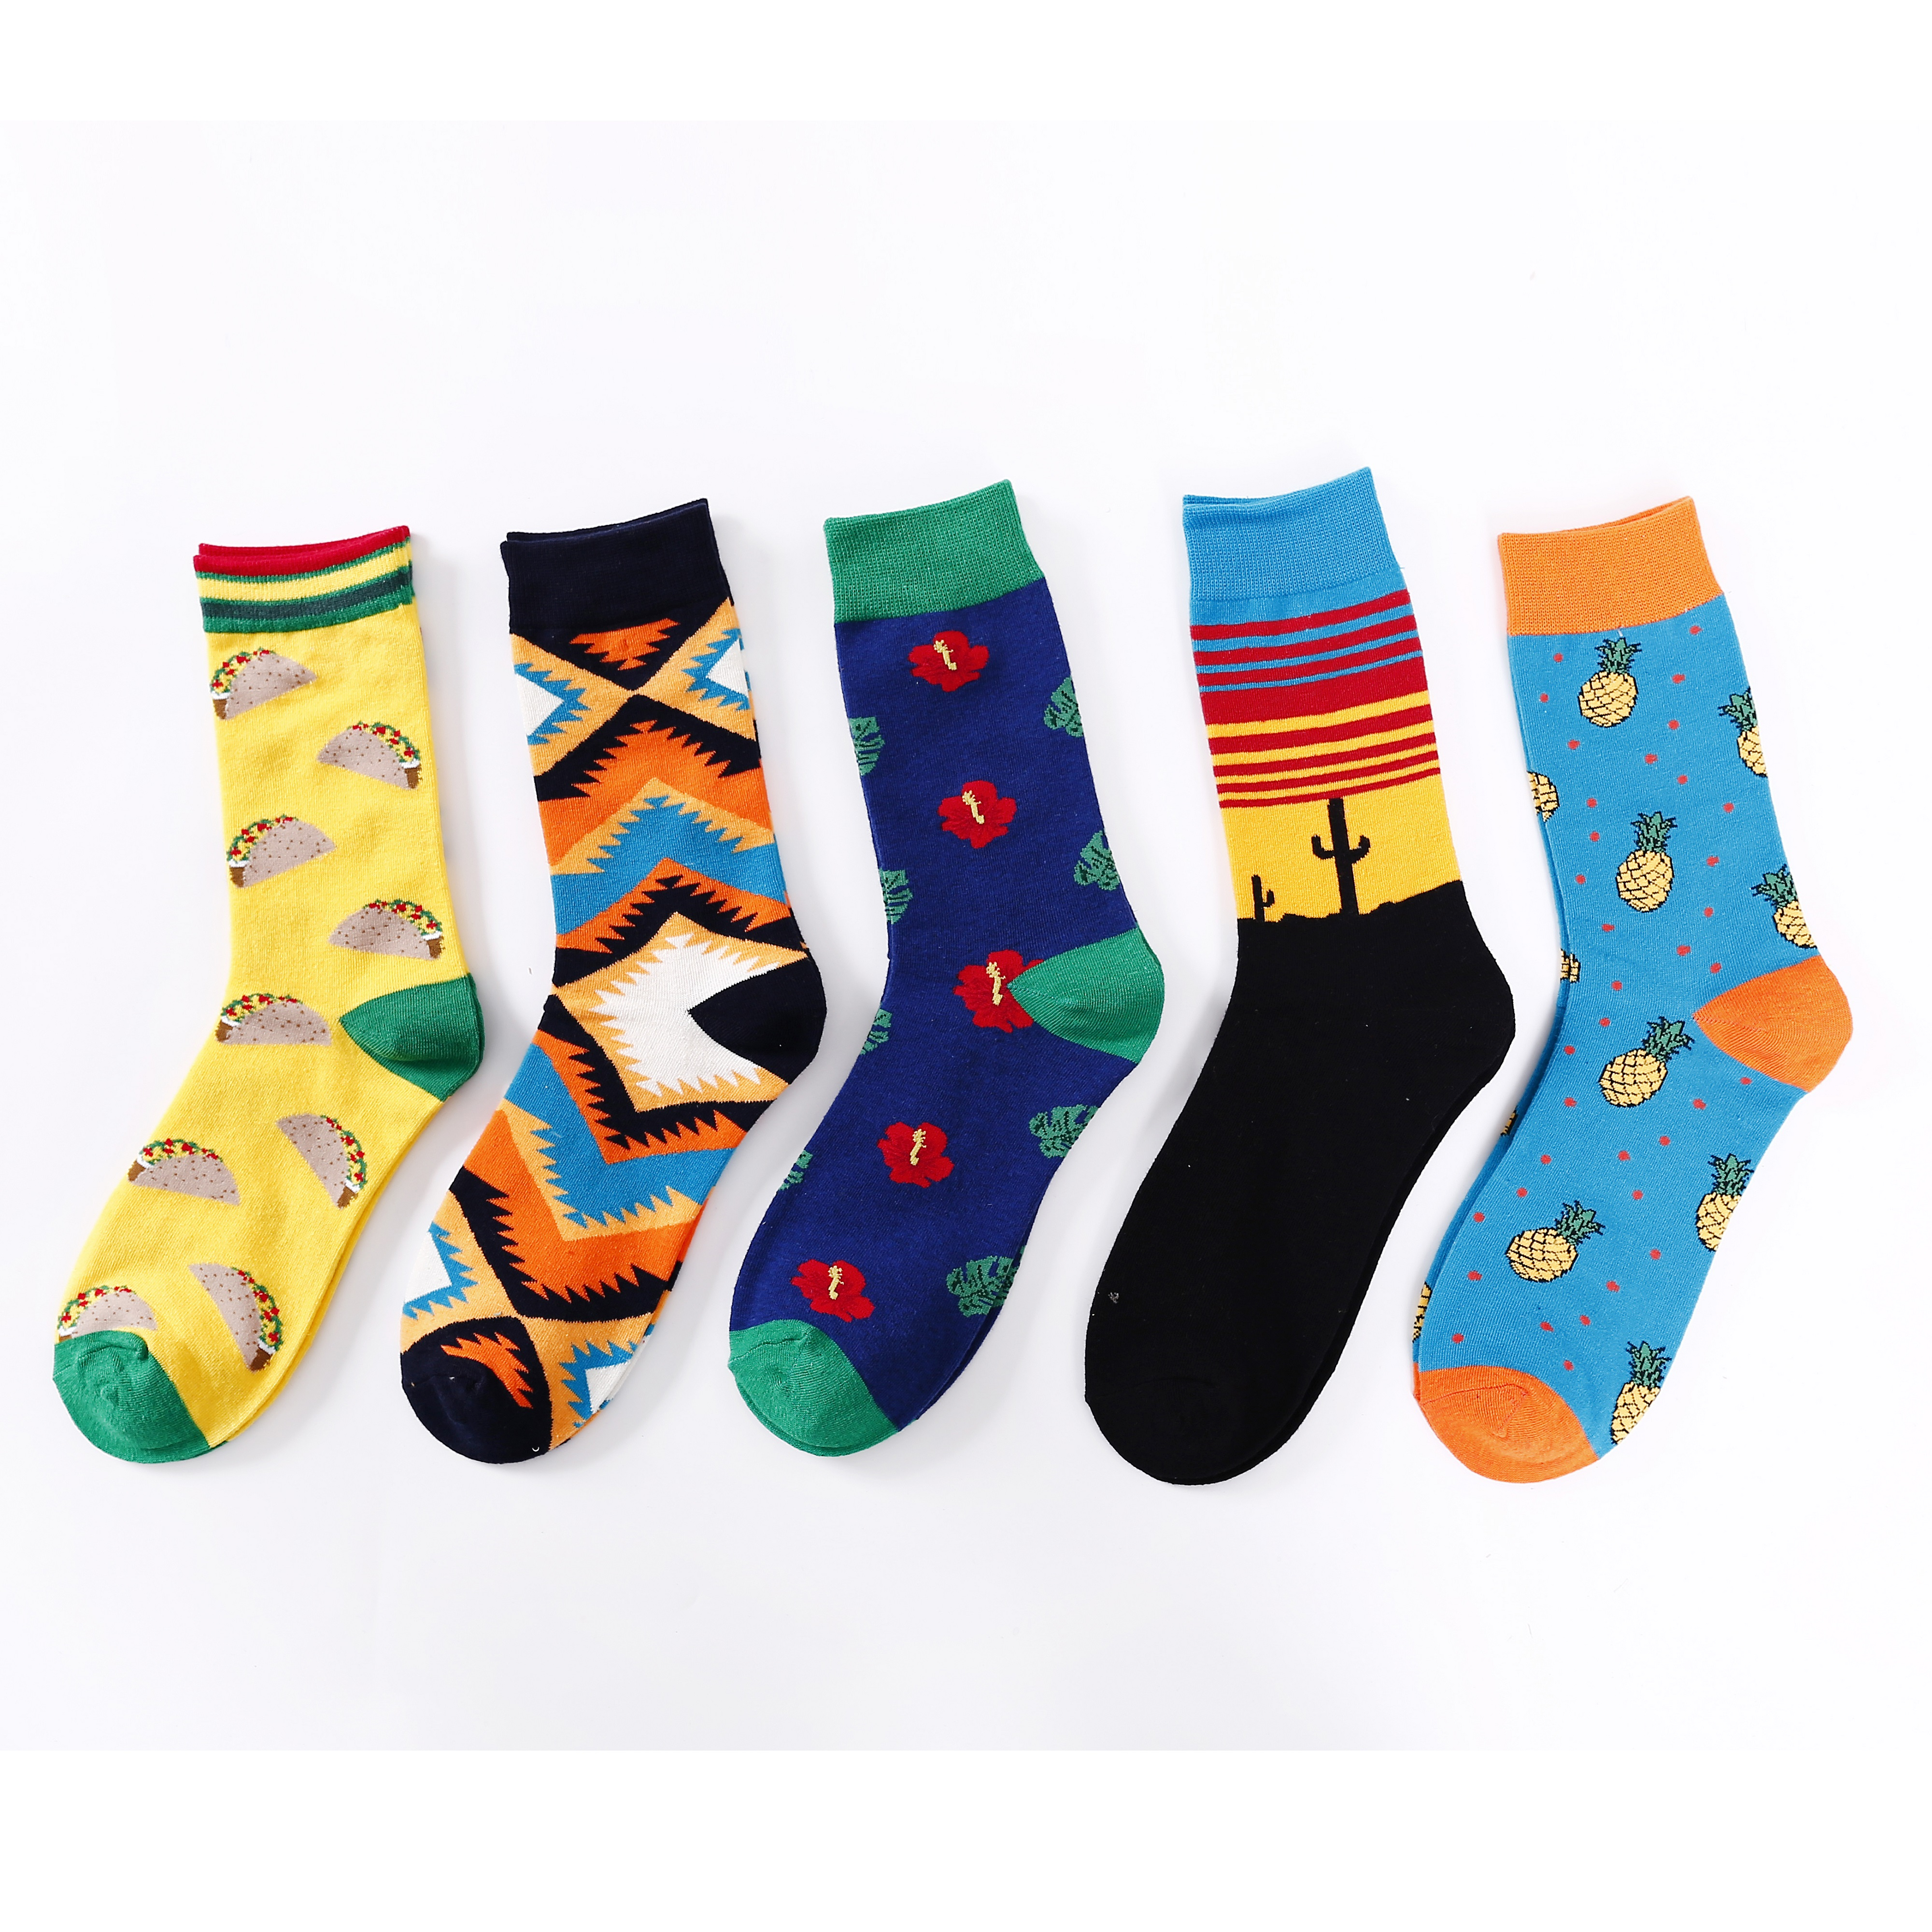 Men's warm cartoon socks casual socks men's sports socks non-slip breathable cotton socks funny socks fun socks happy men's sock